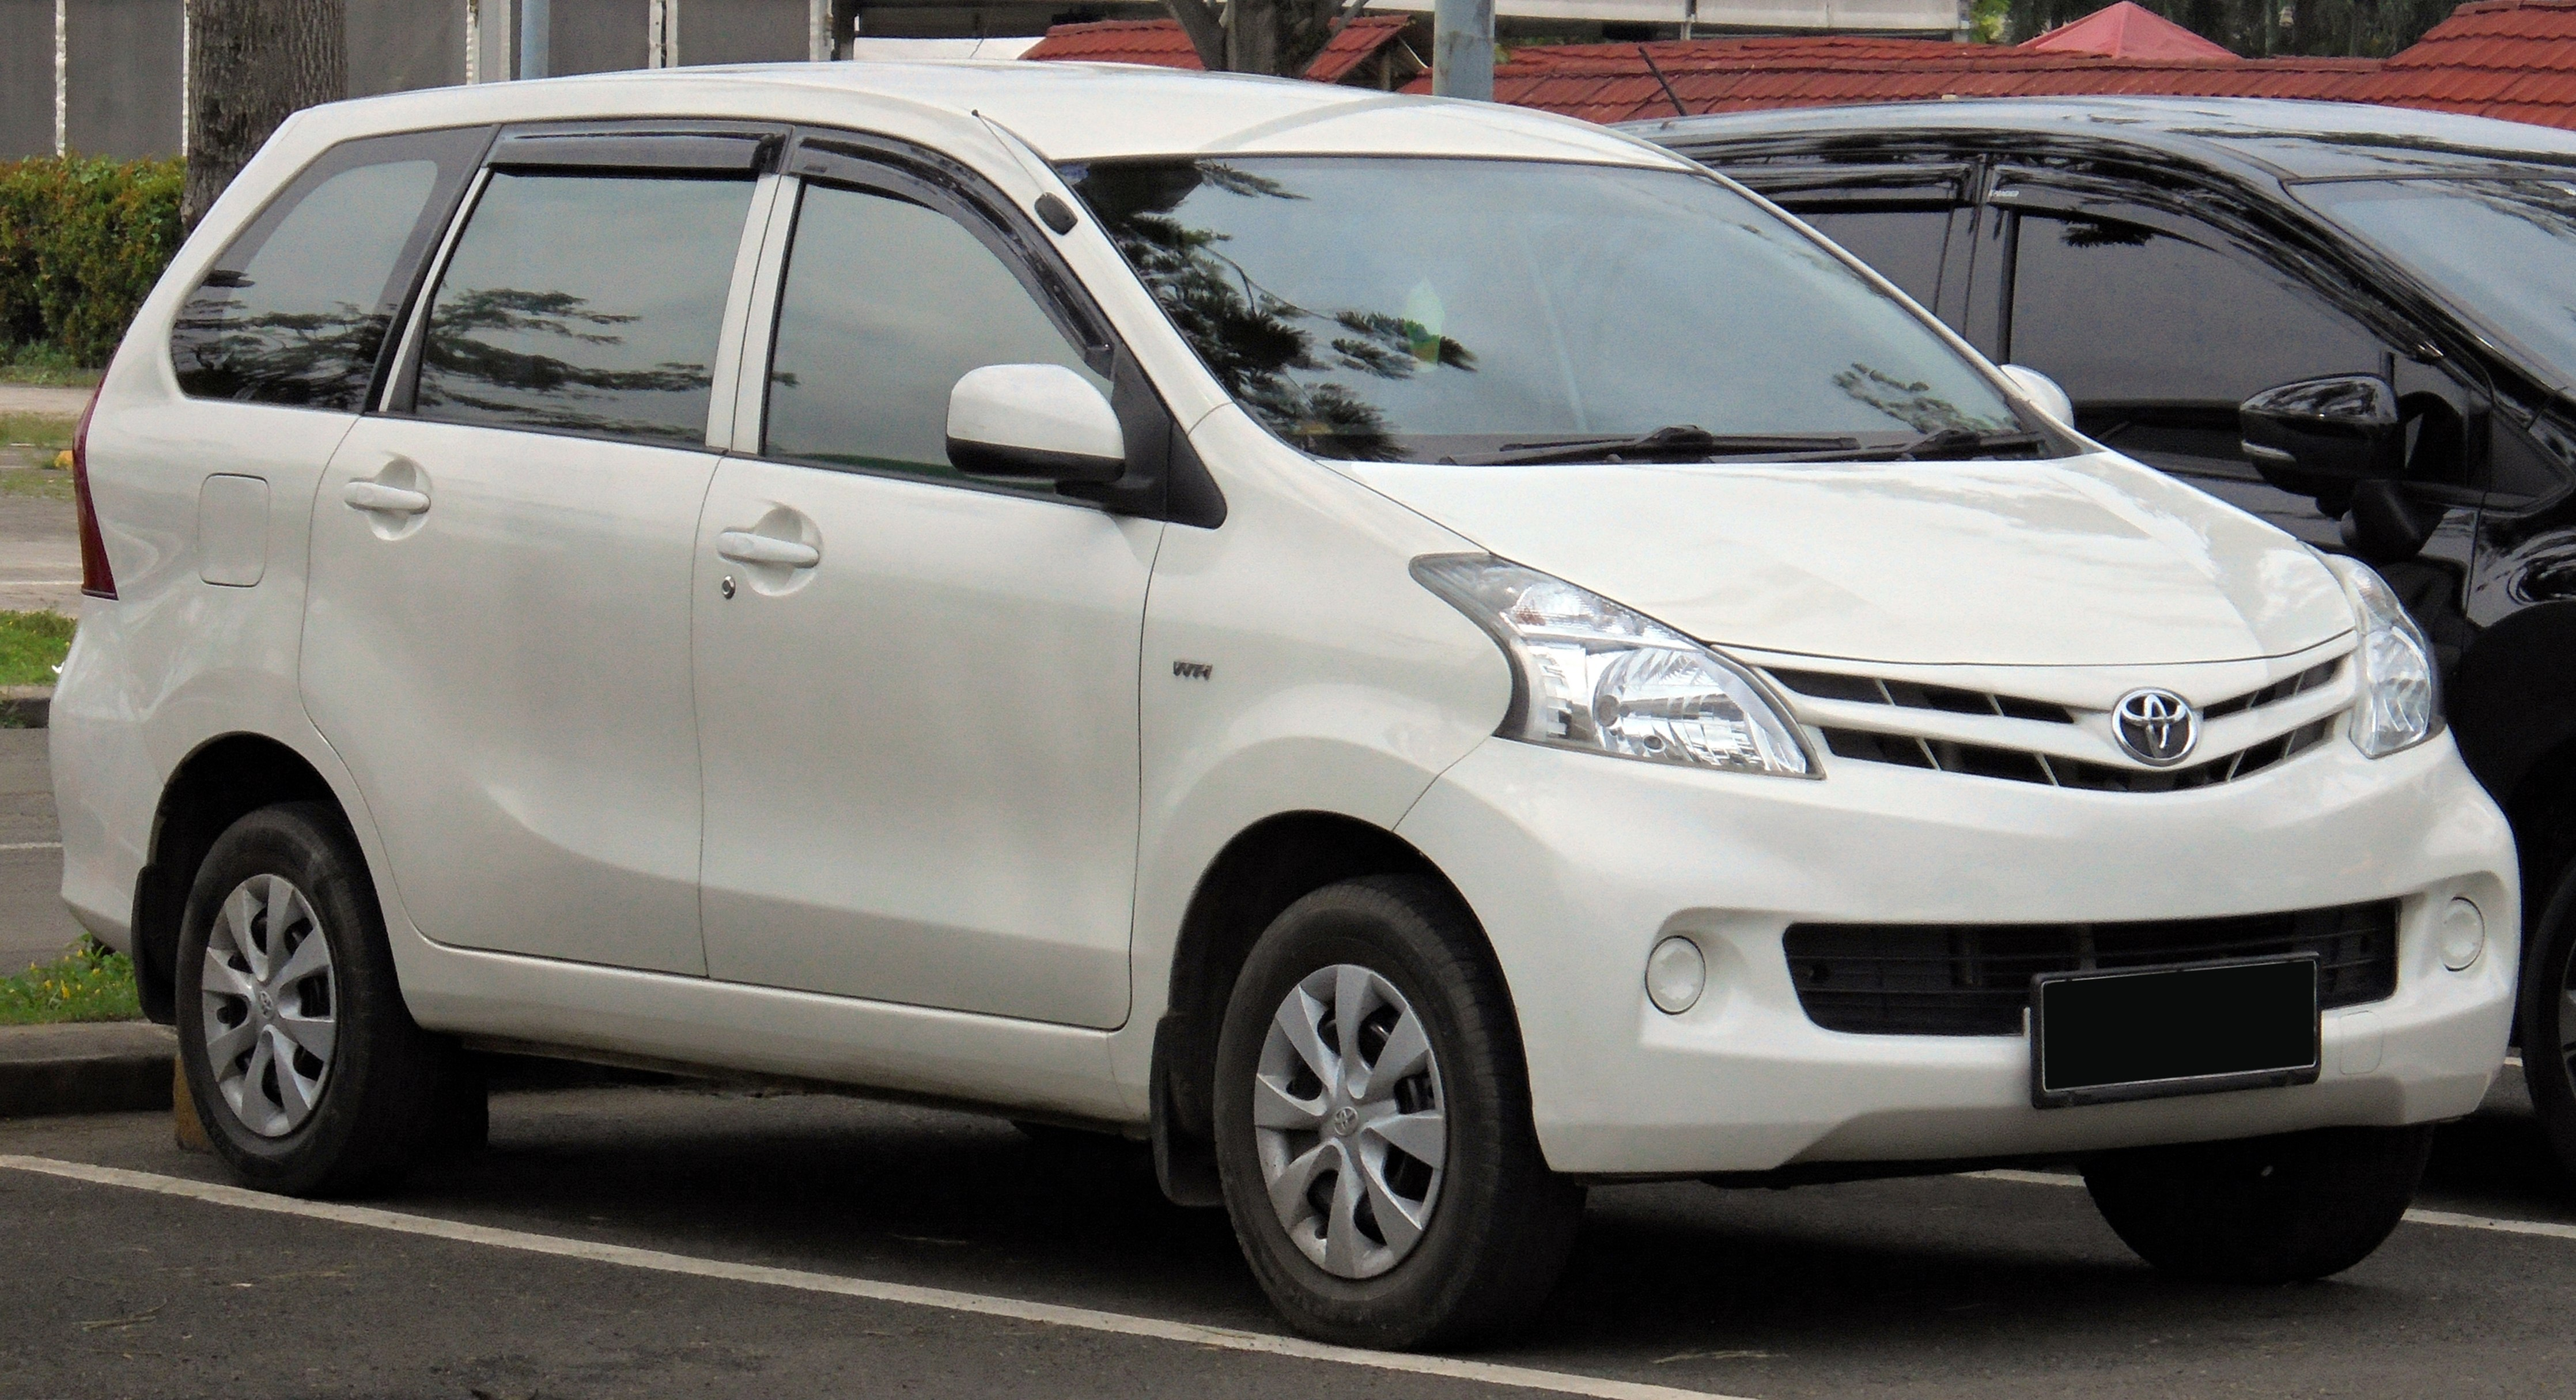 Toyota Avanza - The complete information and online sale with free